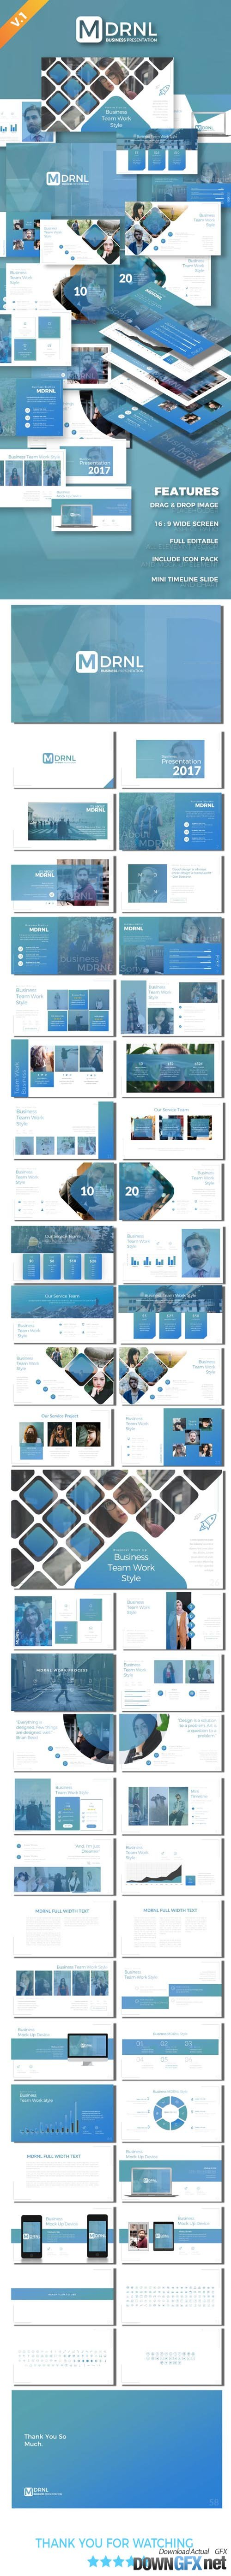 MDRNL Business v.1 Template 20462133